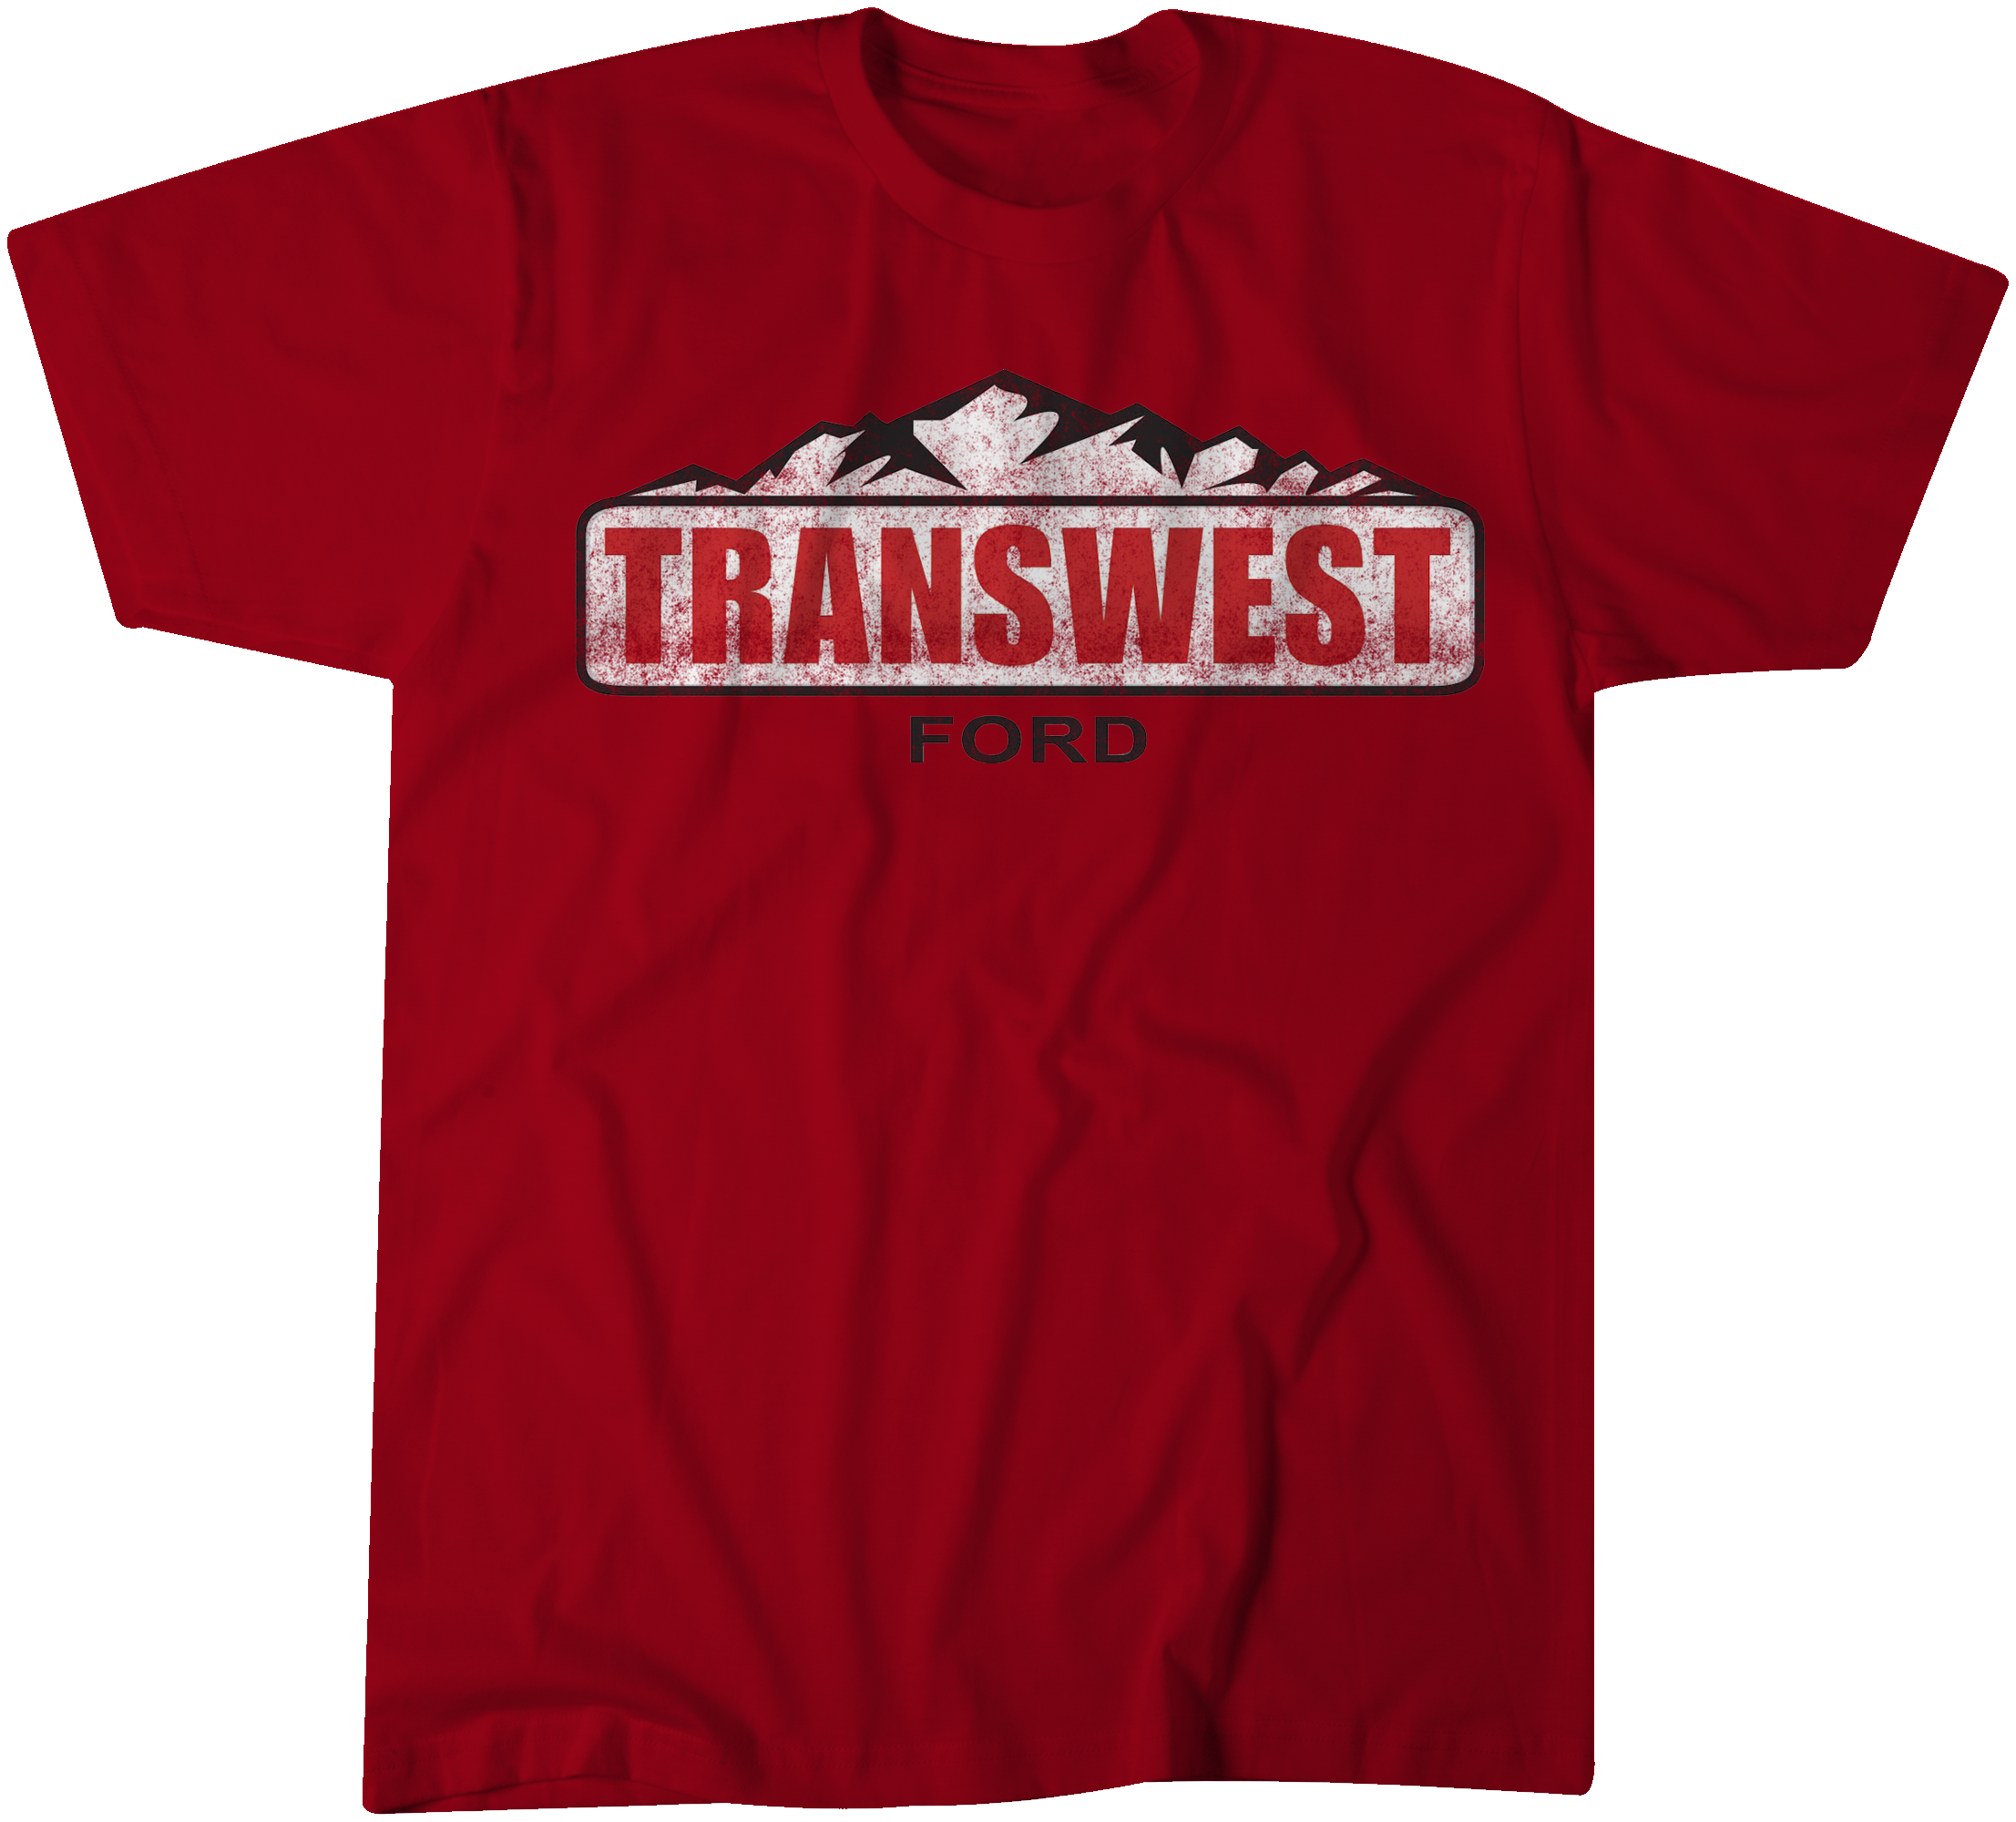 42000464-transwest-red.png